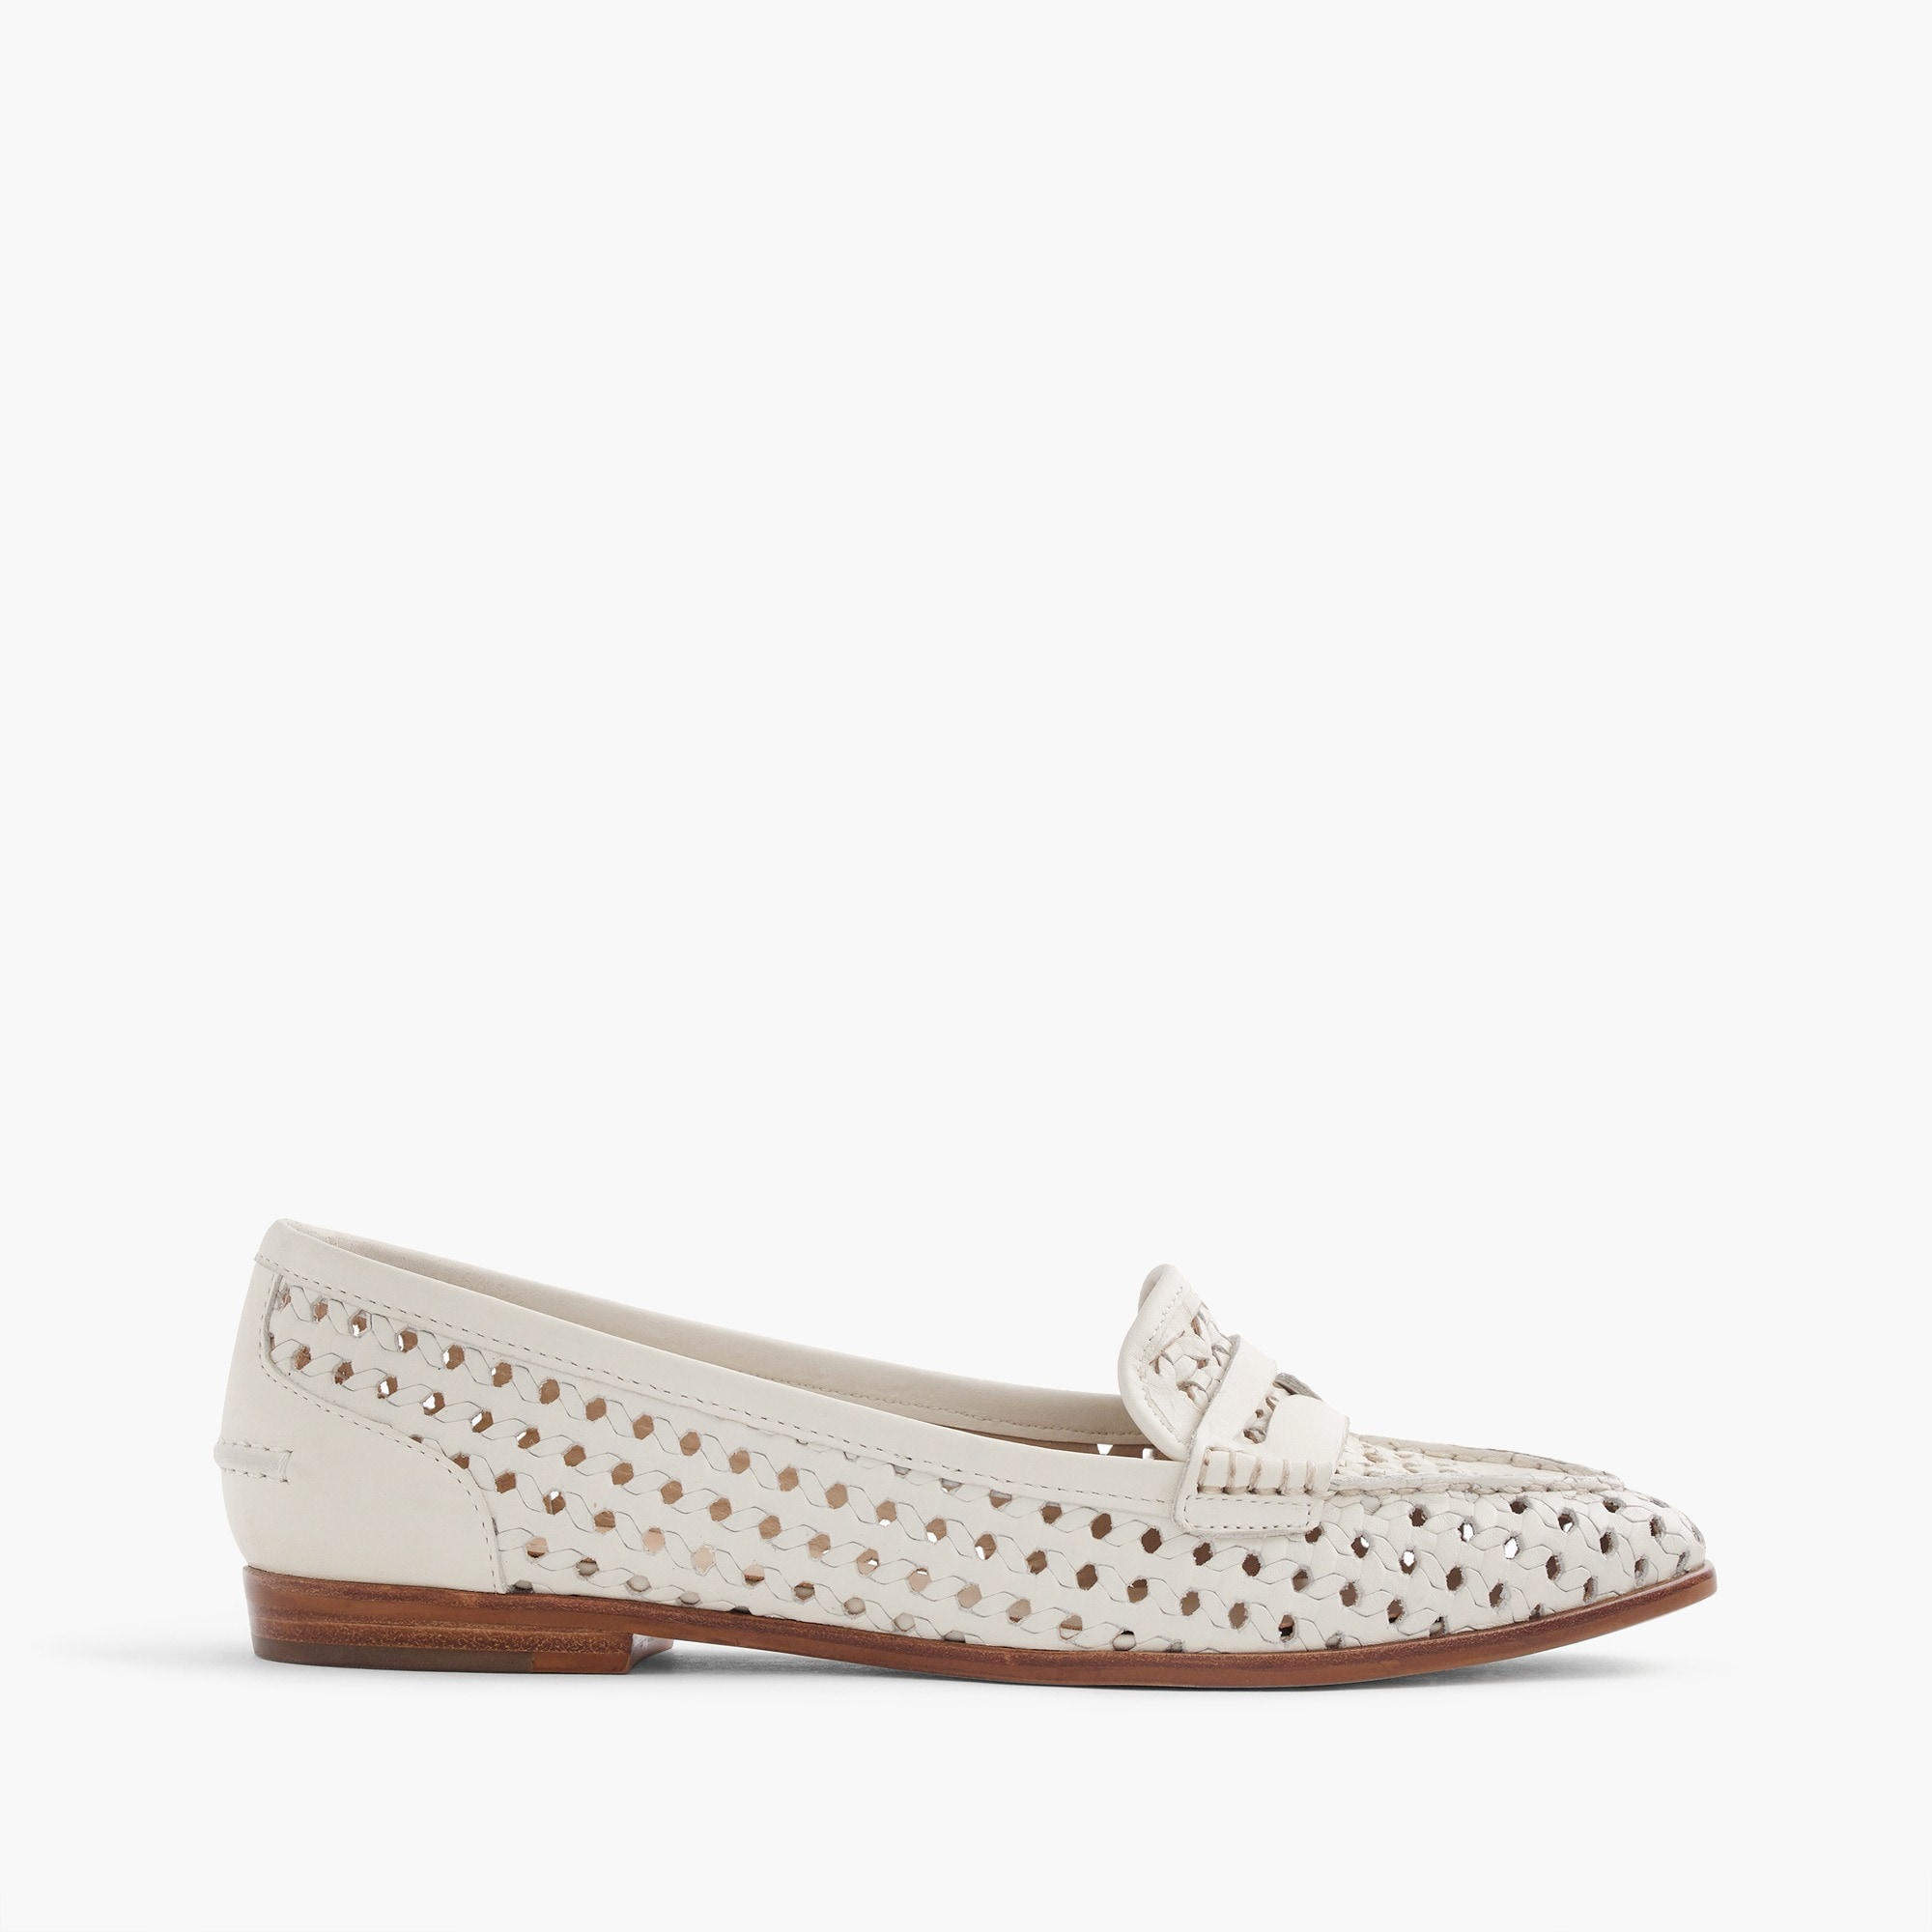 Collins woven-leather loafers